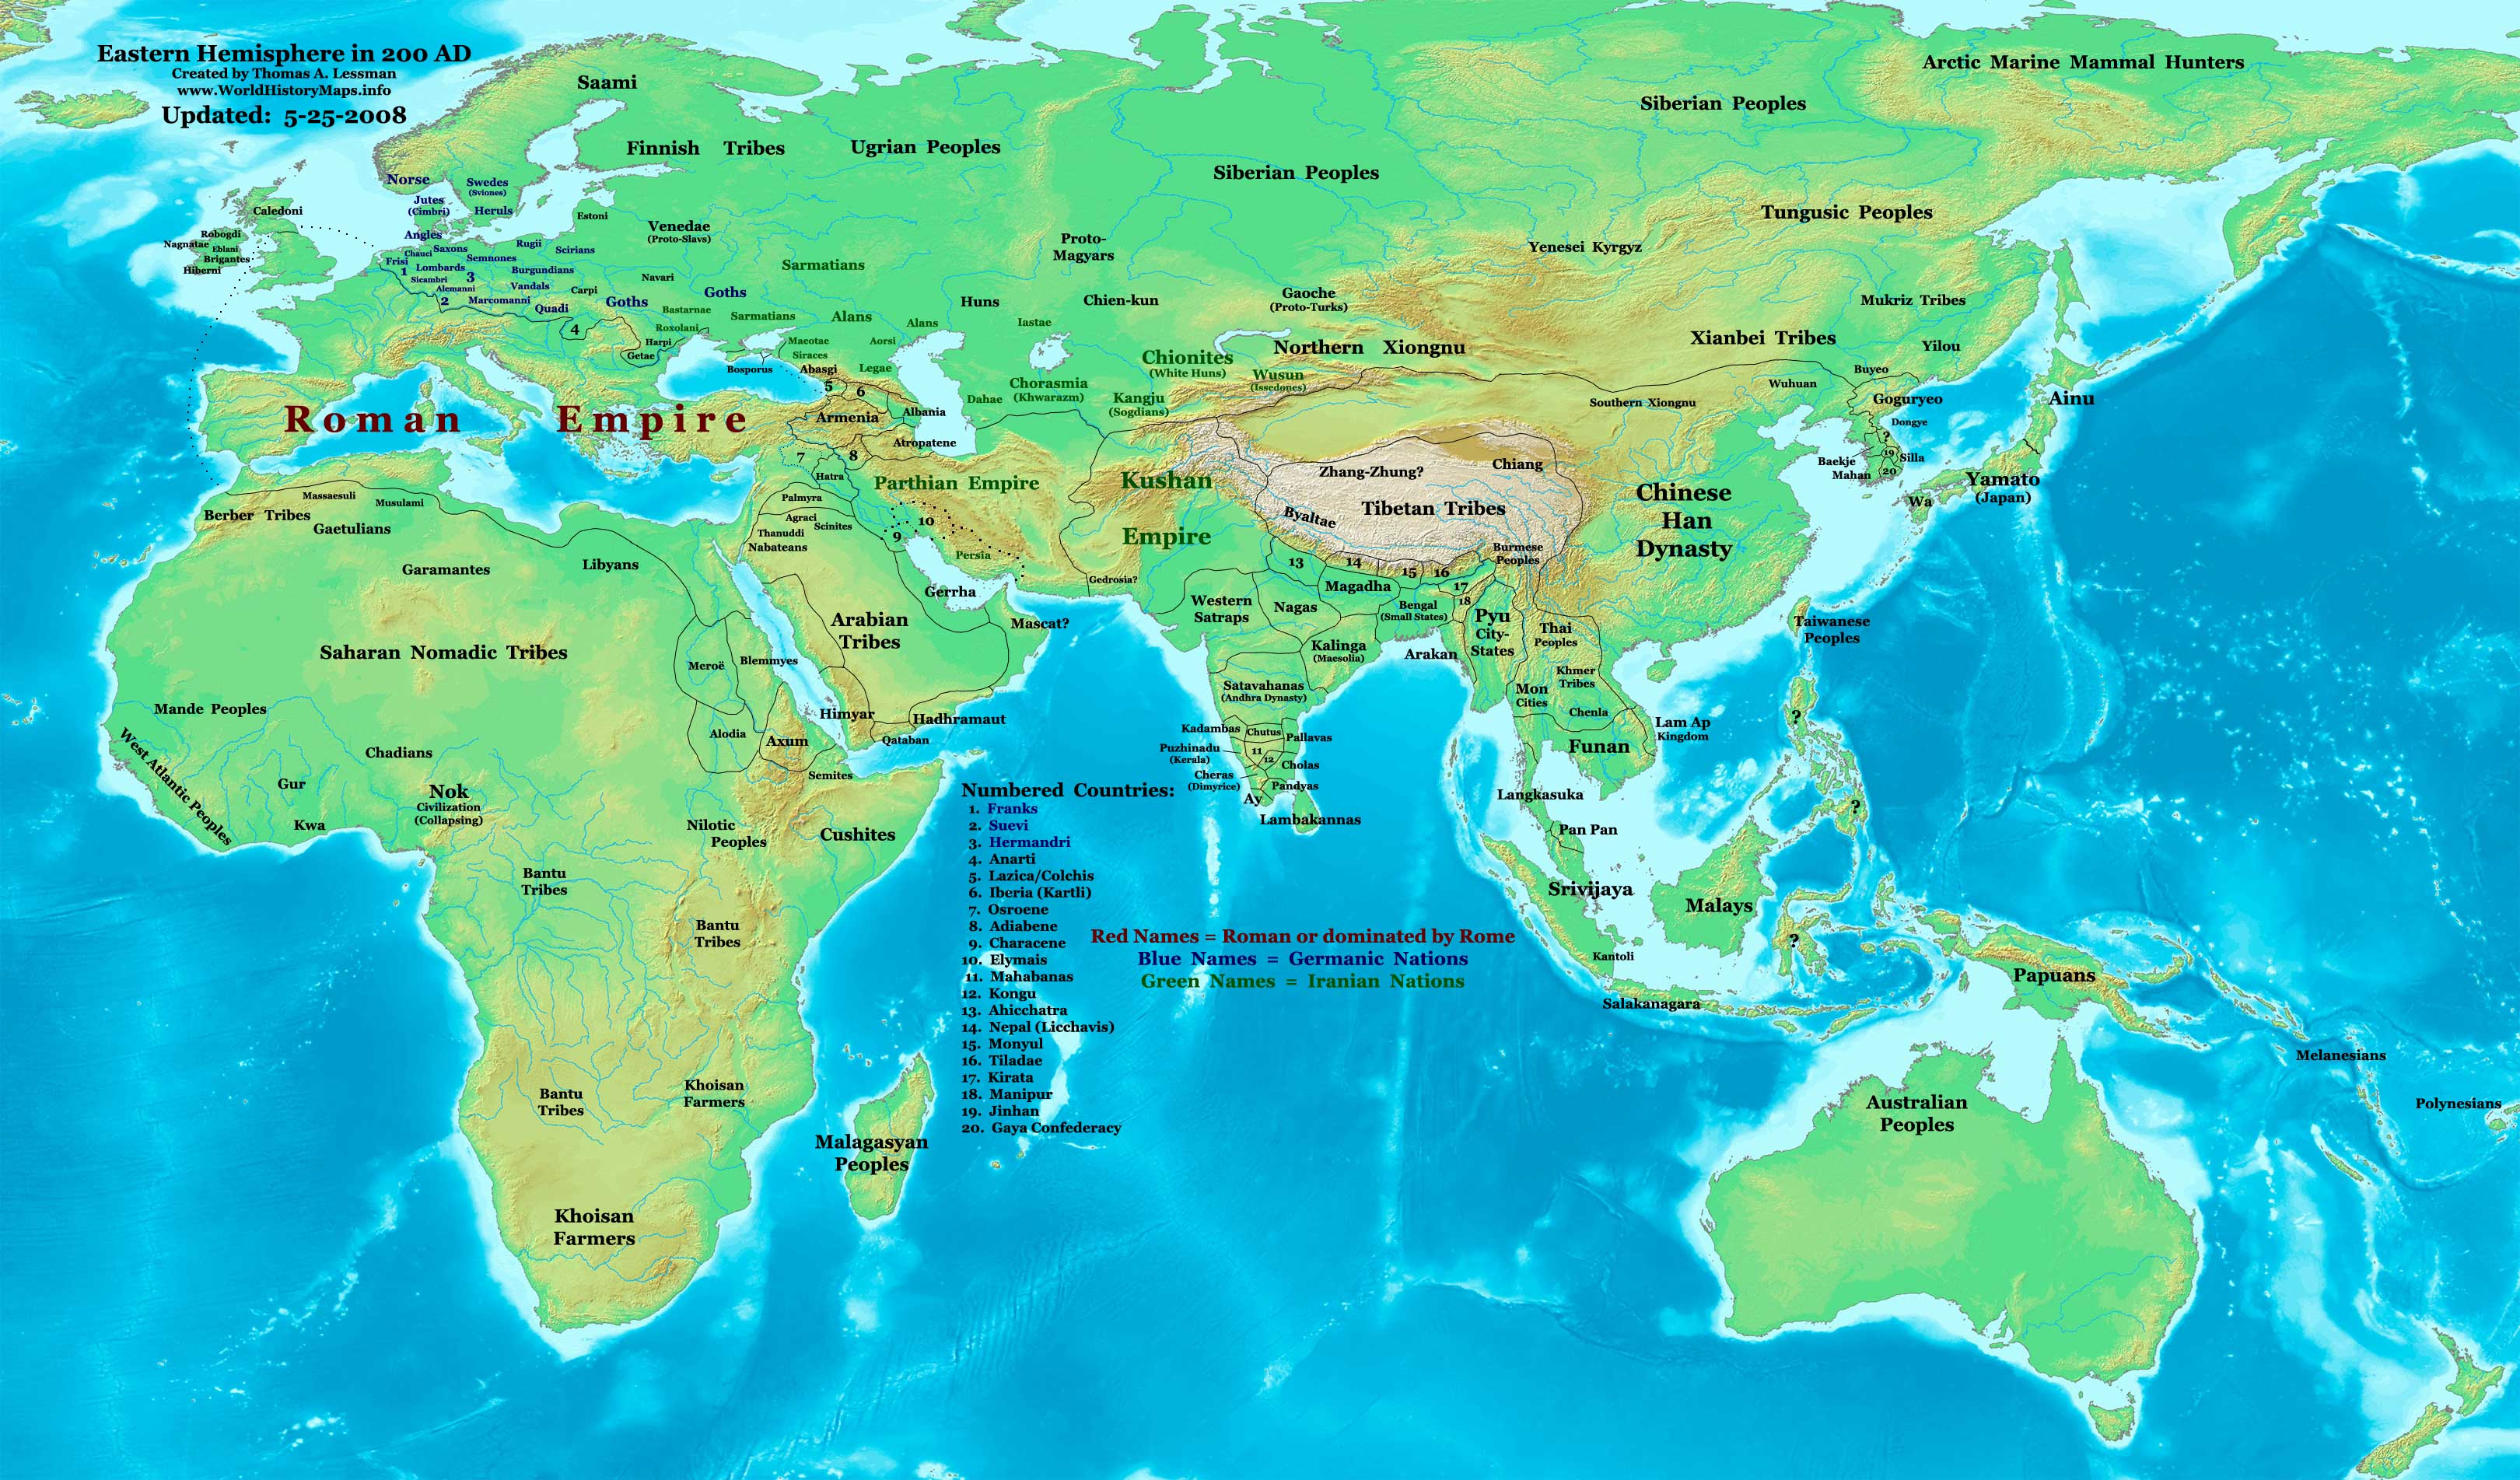 Eastern Hemisphere in 200 AD.